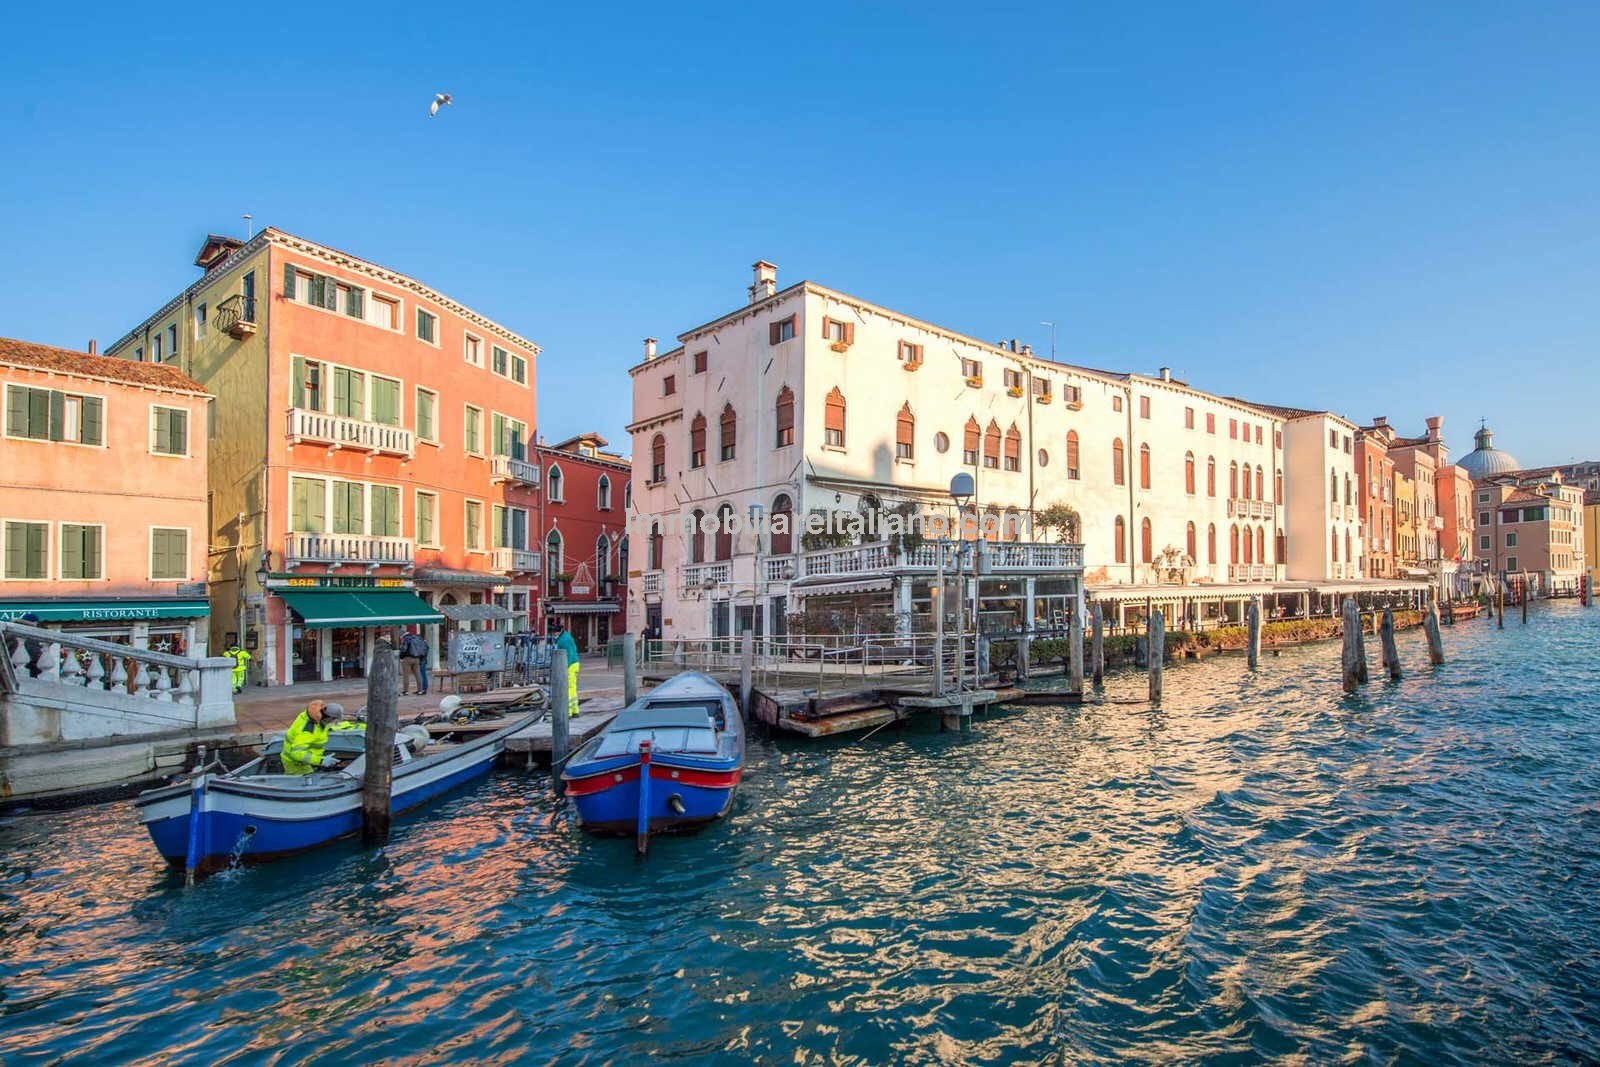 View of Grand Canal Venice